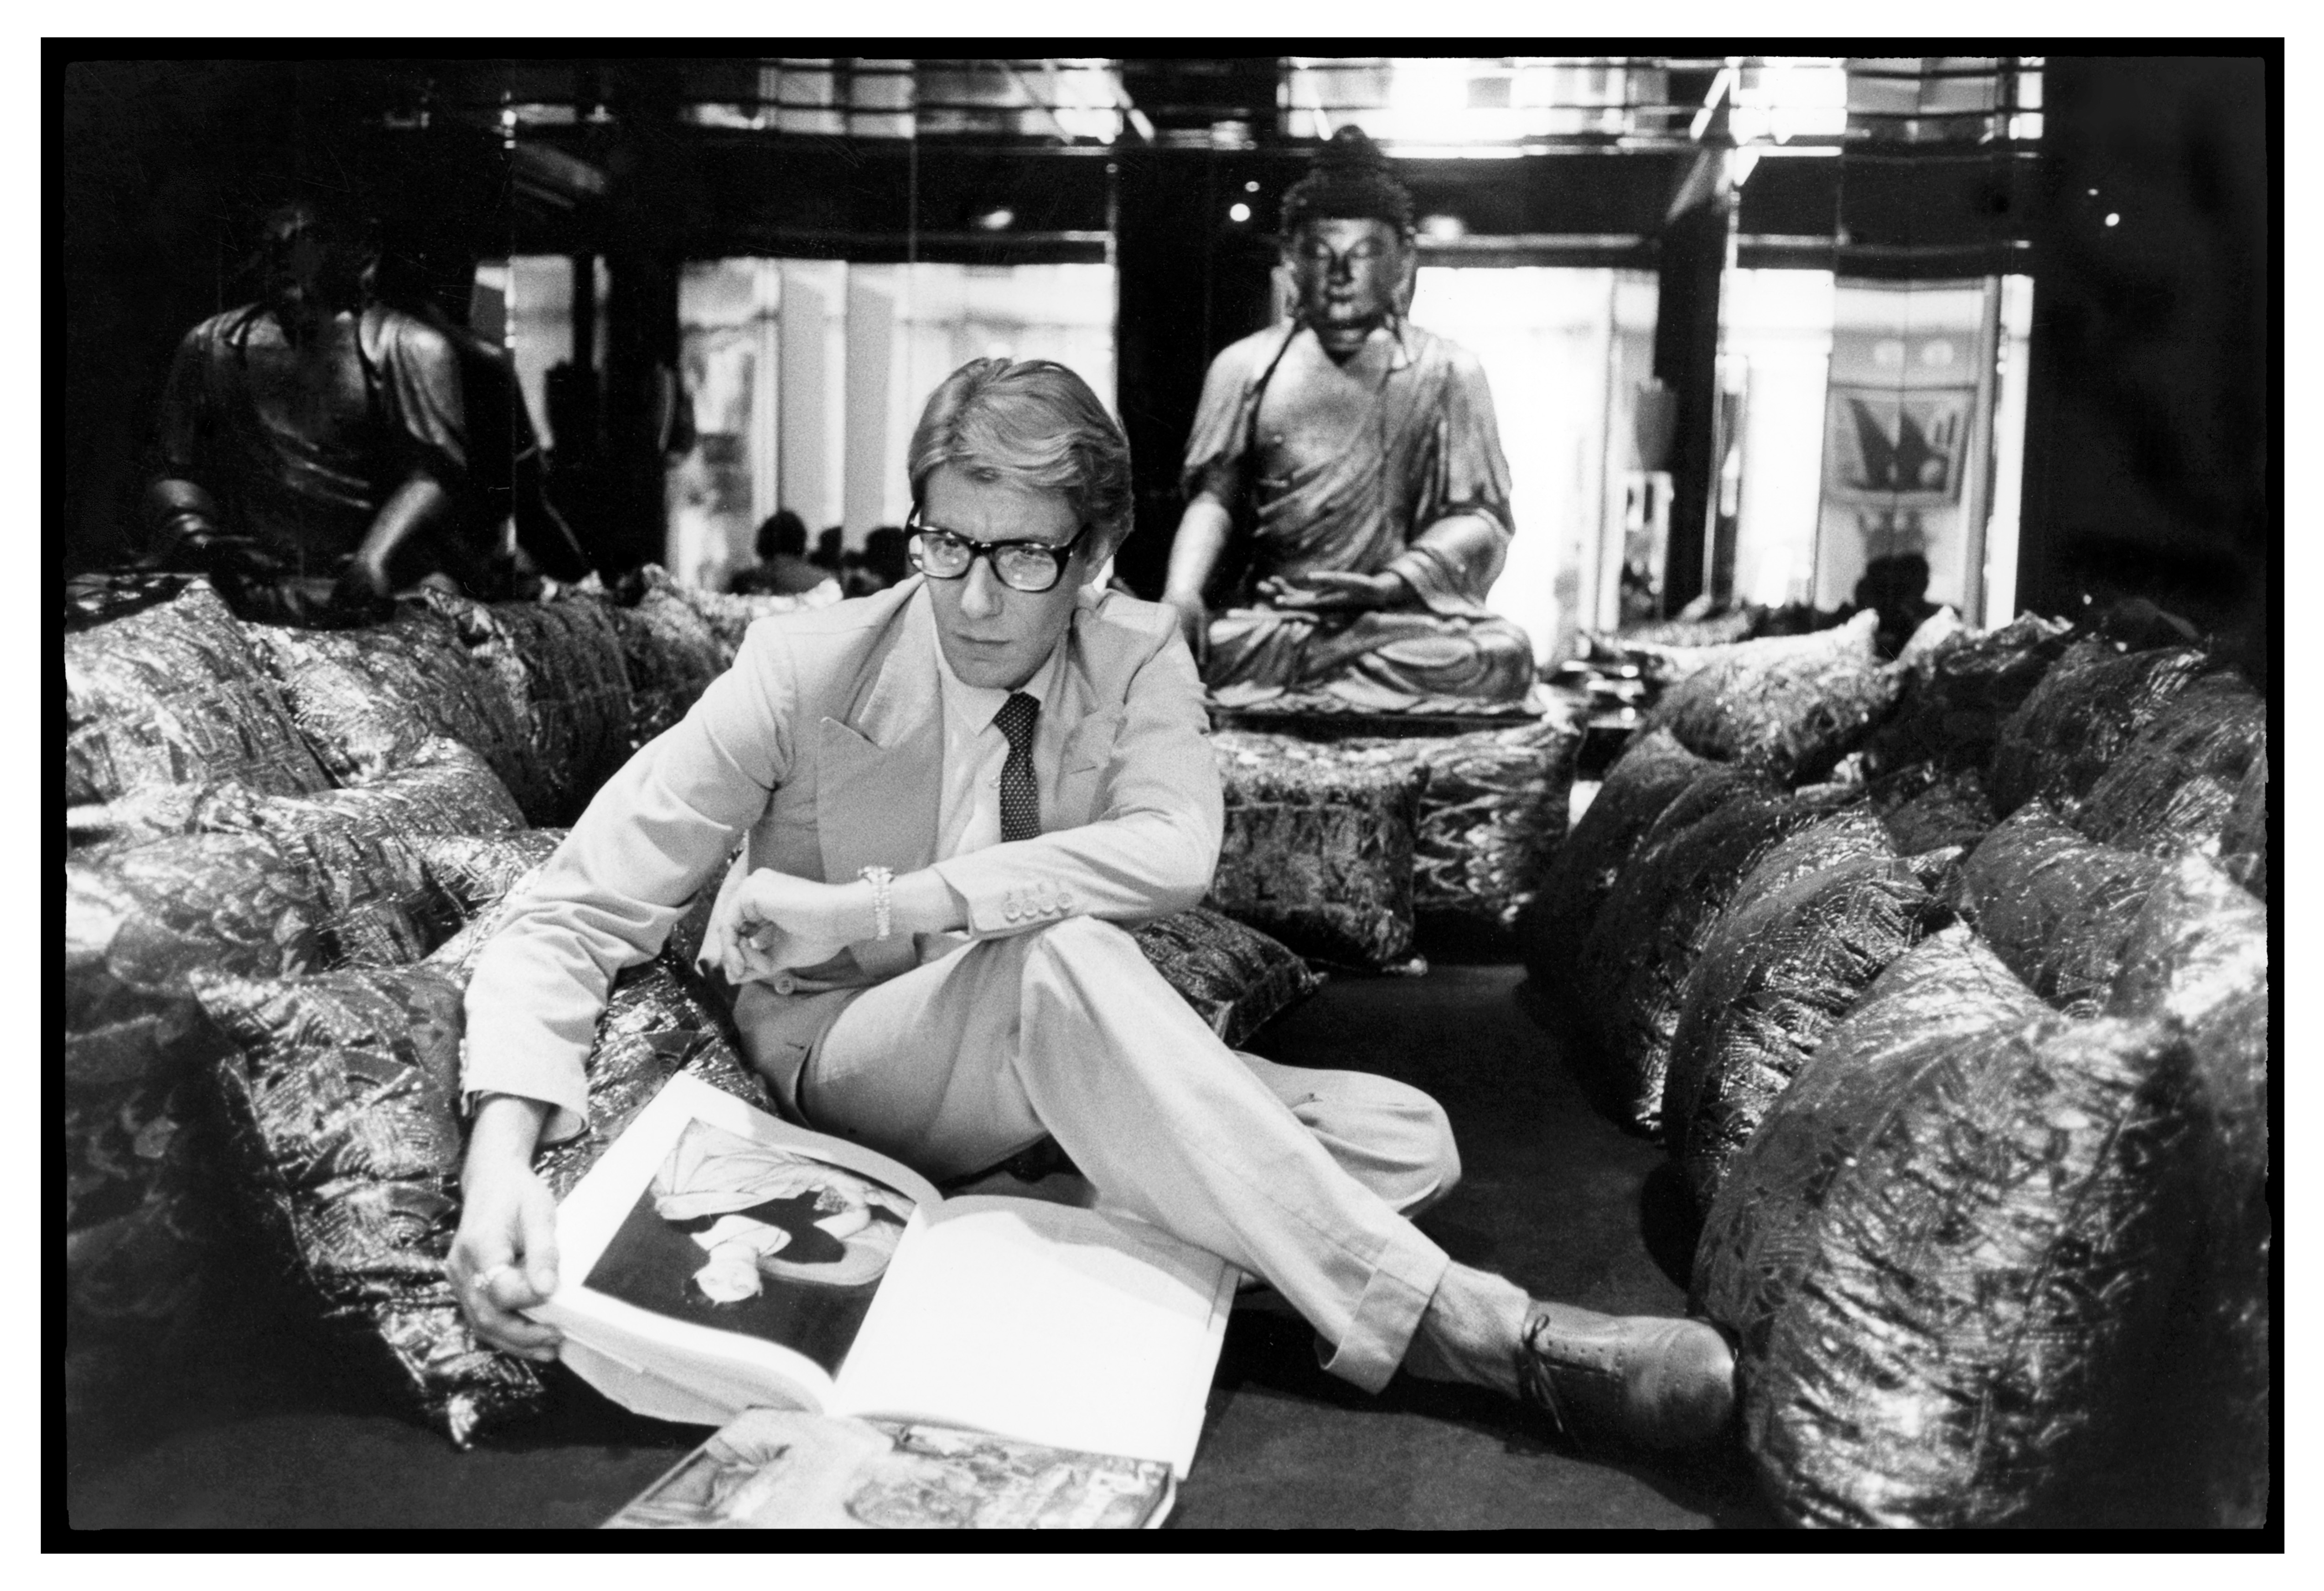 Yves Saint Laurent en 1977 dans son appartement, 55, rue de Babylone, à Paris. Photo : André Perlstein. Collection privée.